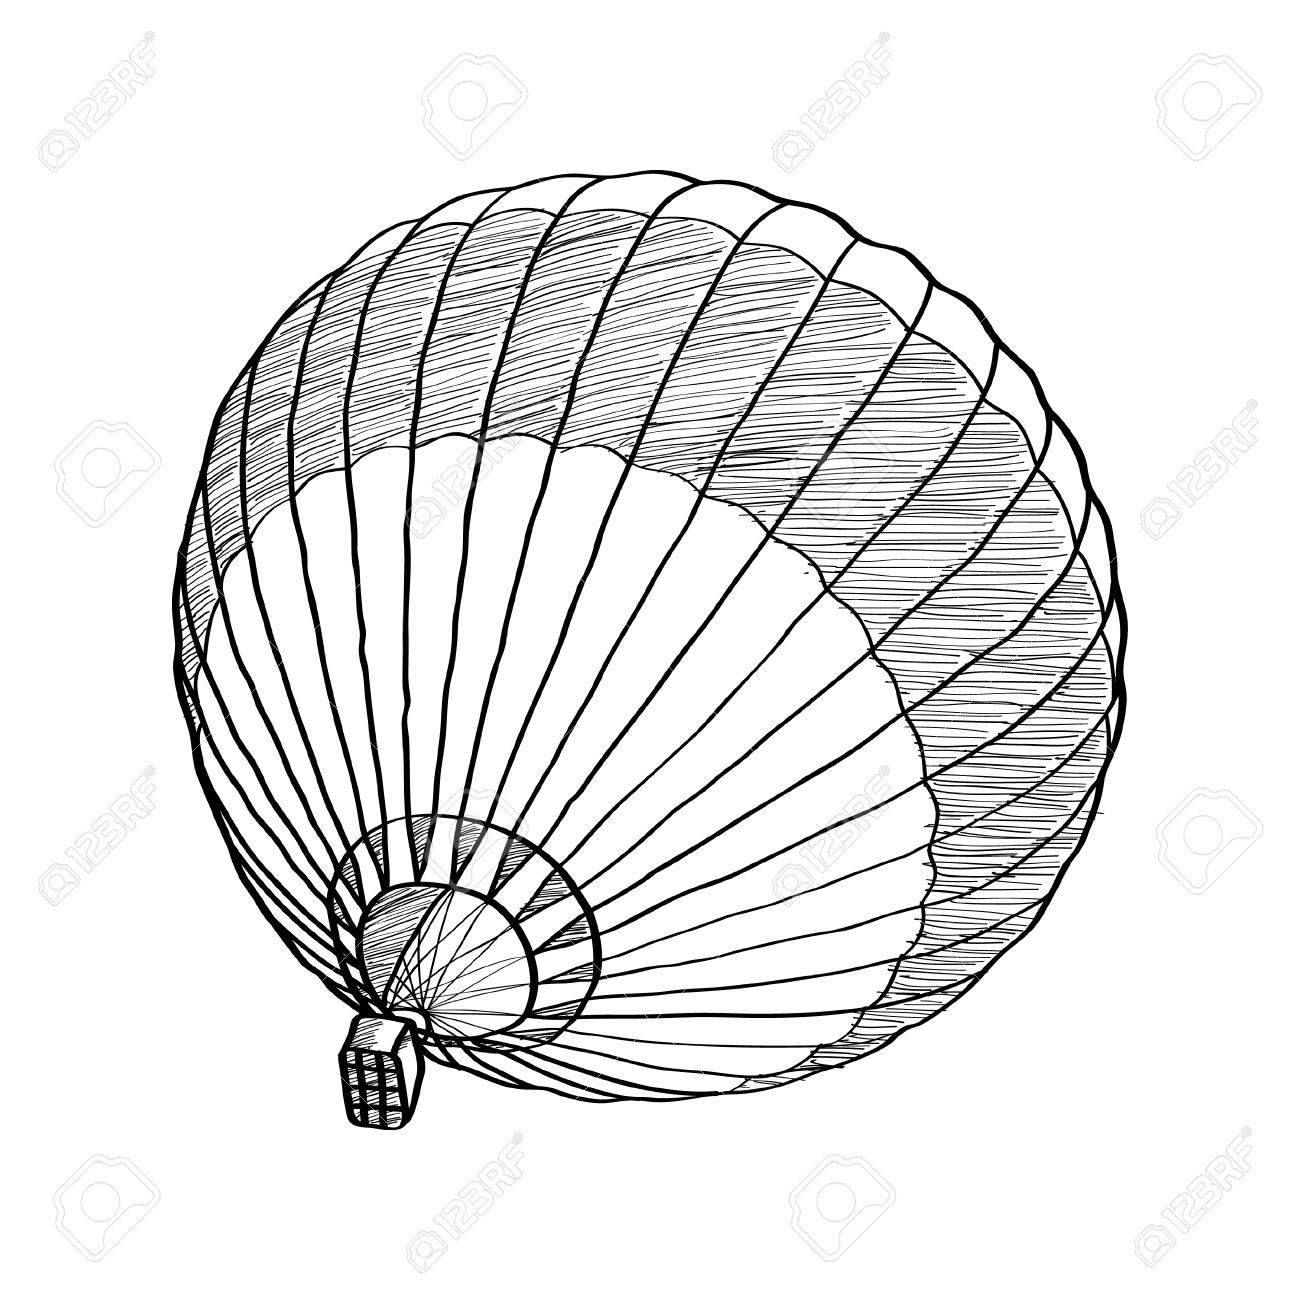 1300x1300 Doodle Of Hot Air Balloon Vector Sketch Up Line Royalty Free